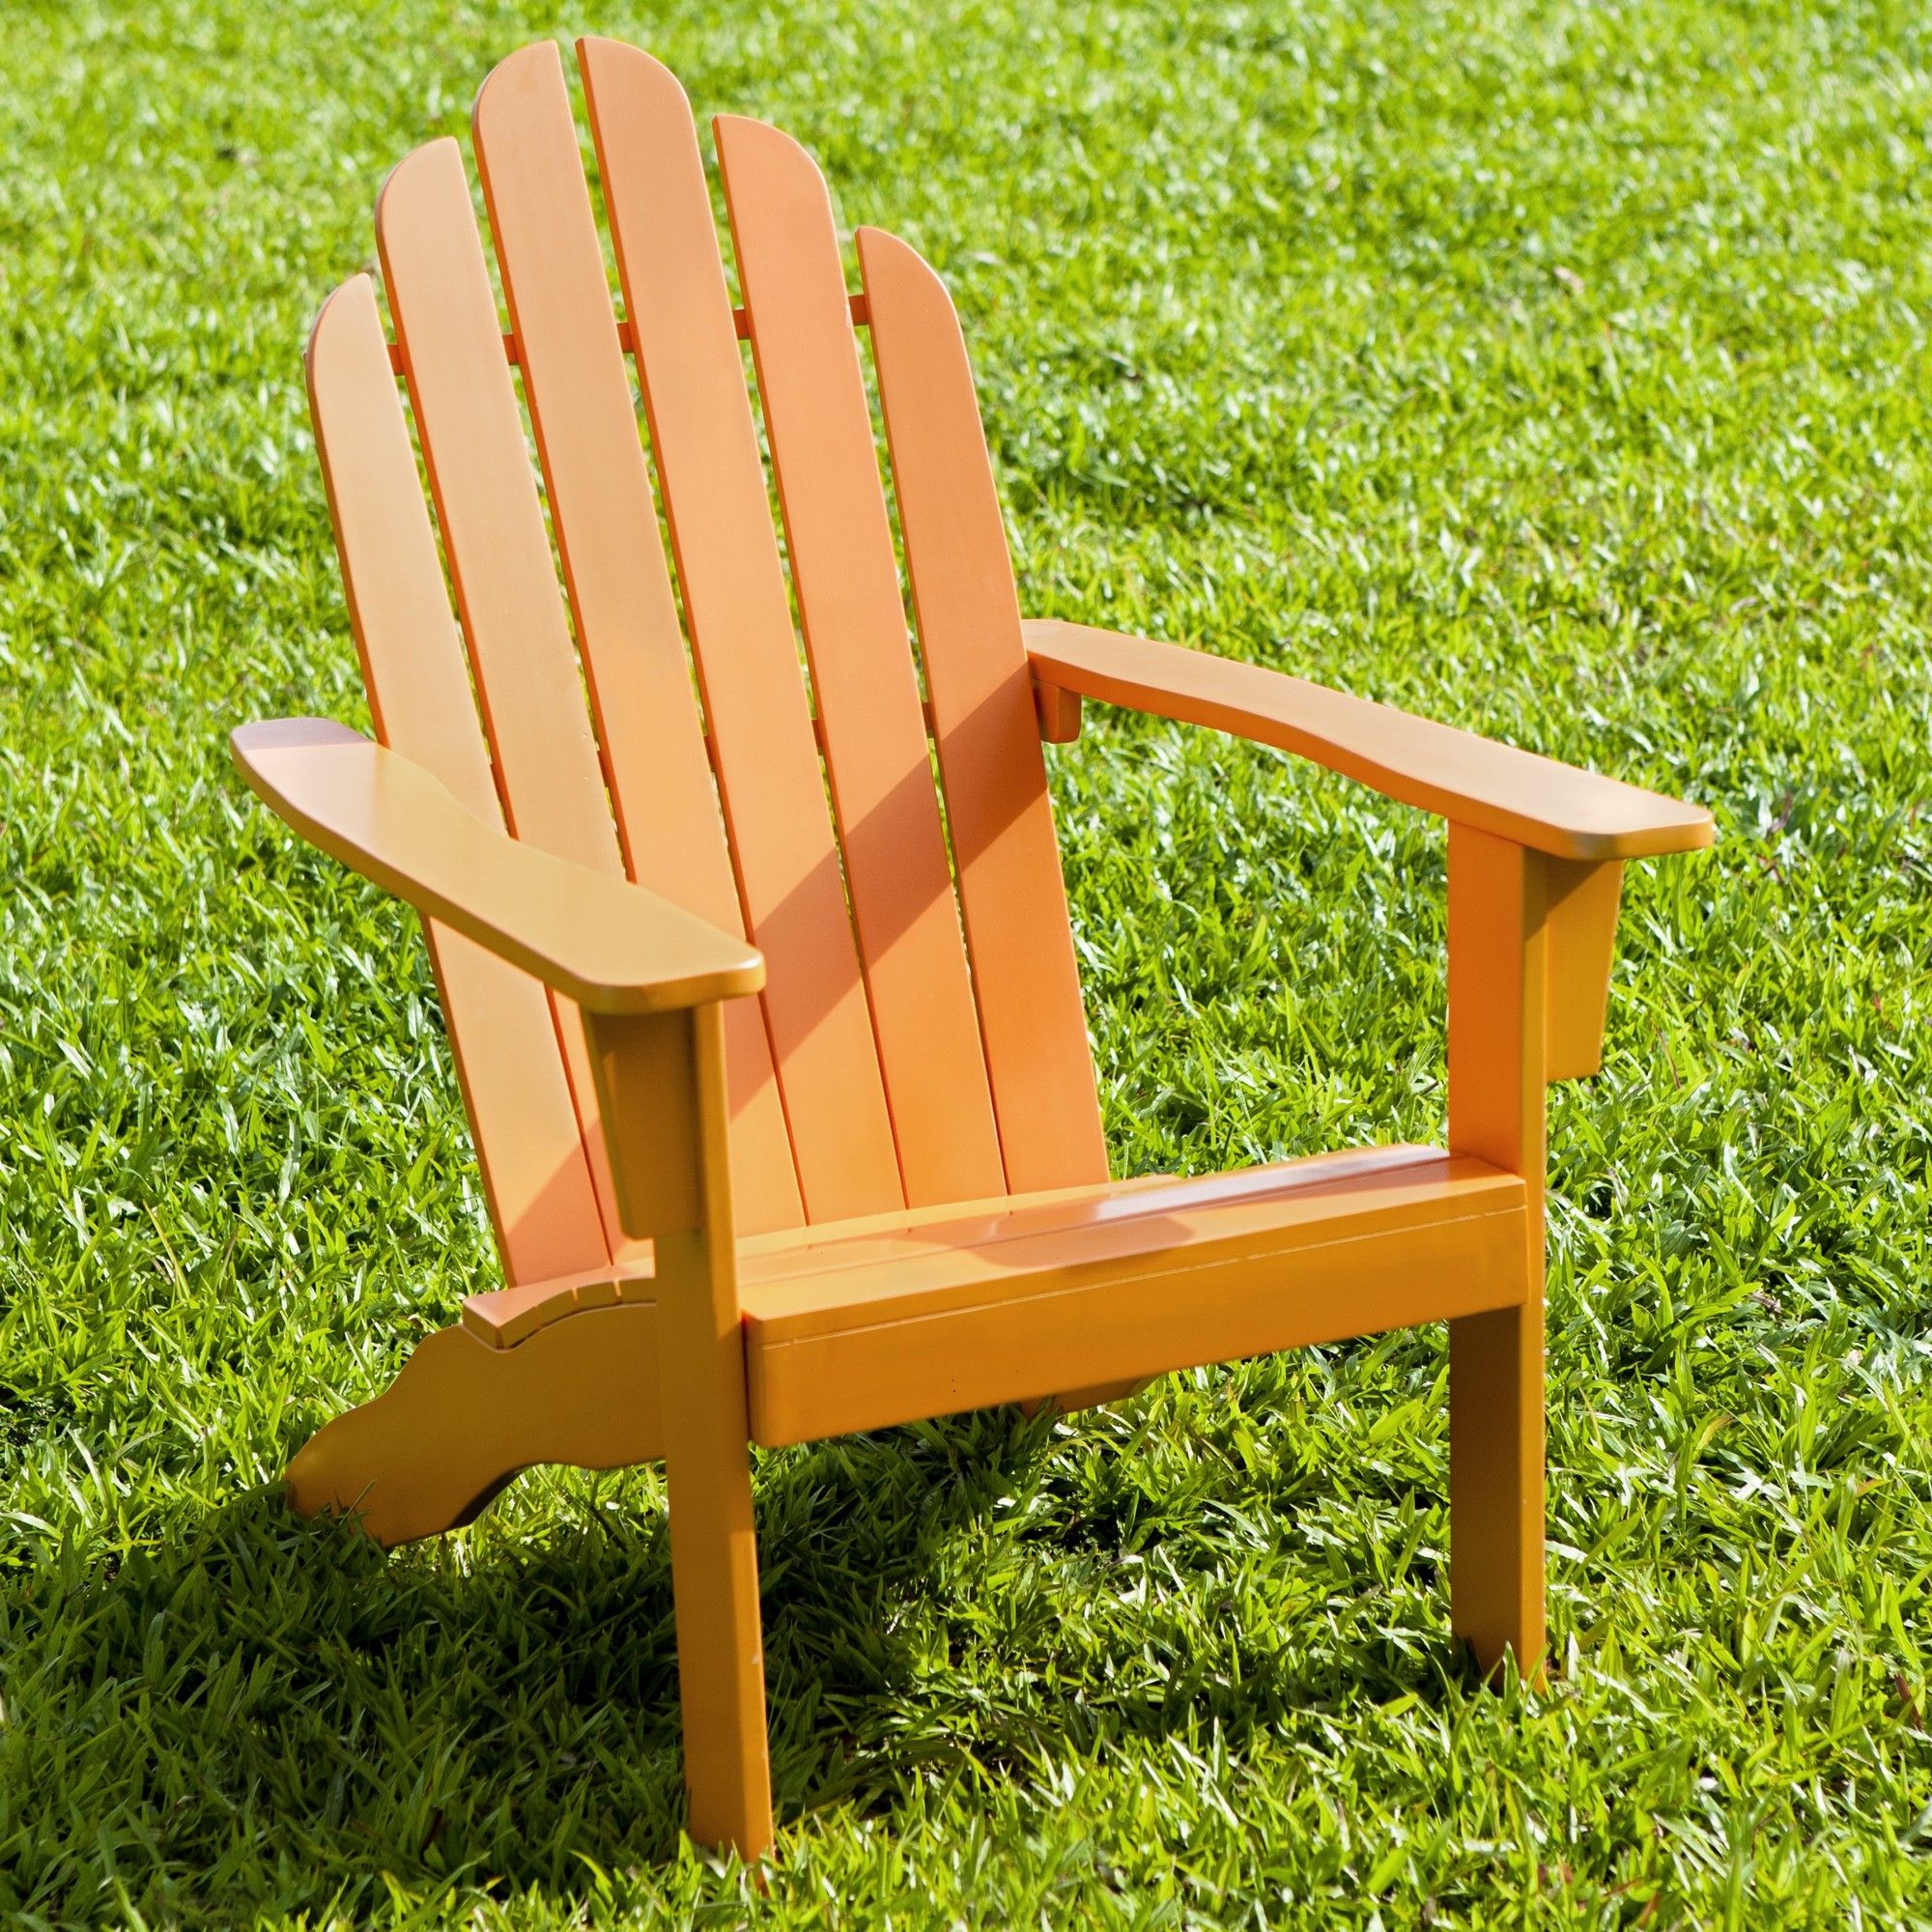 Cuyler Solid Wood Folding Adirondack Chair Patio Chairs Wood